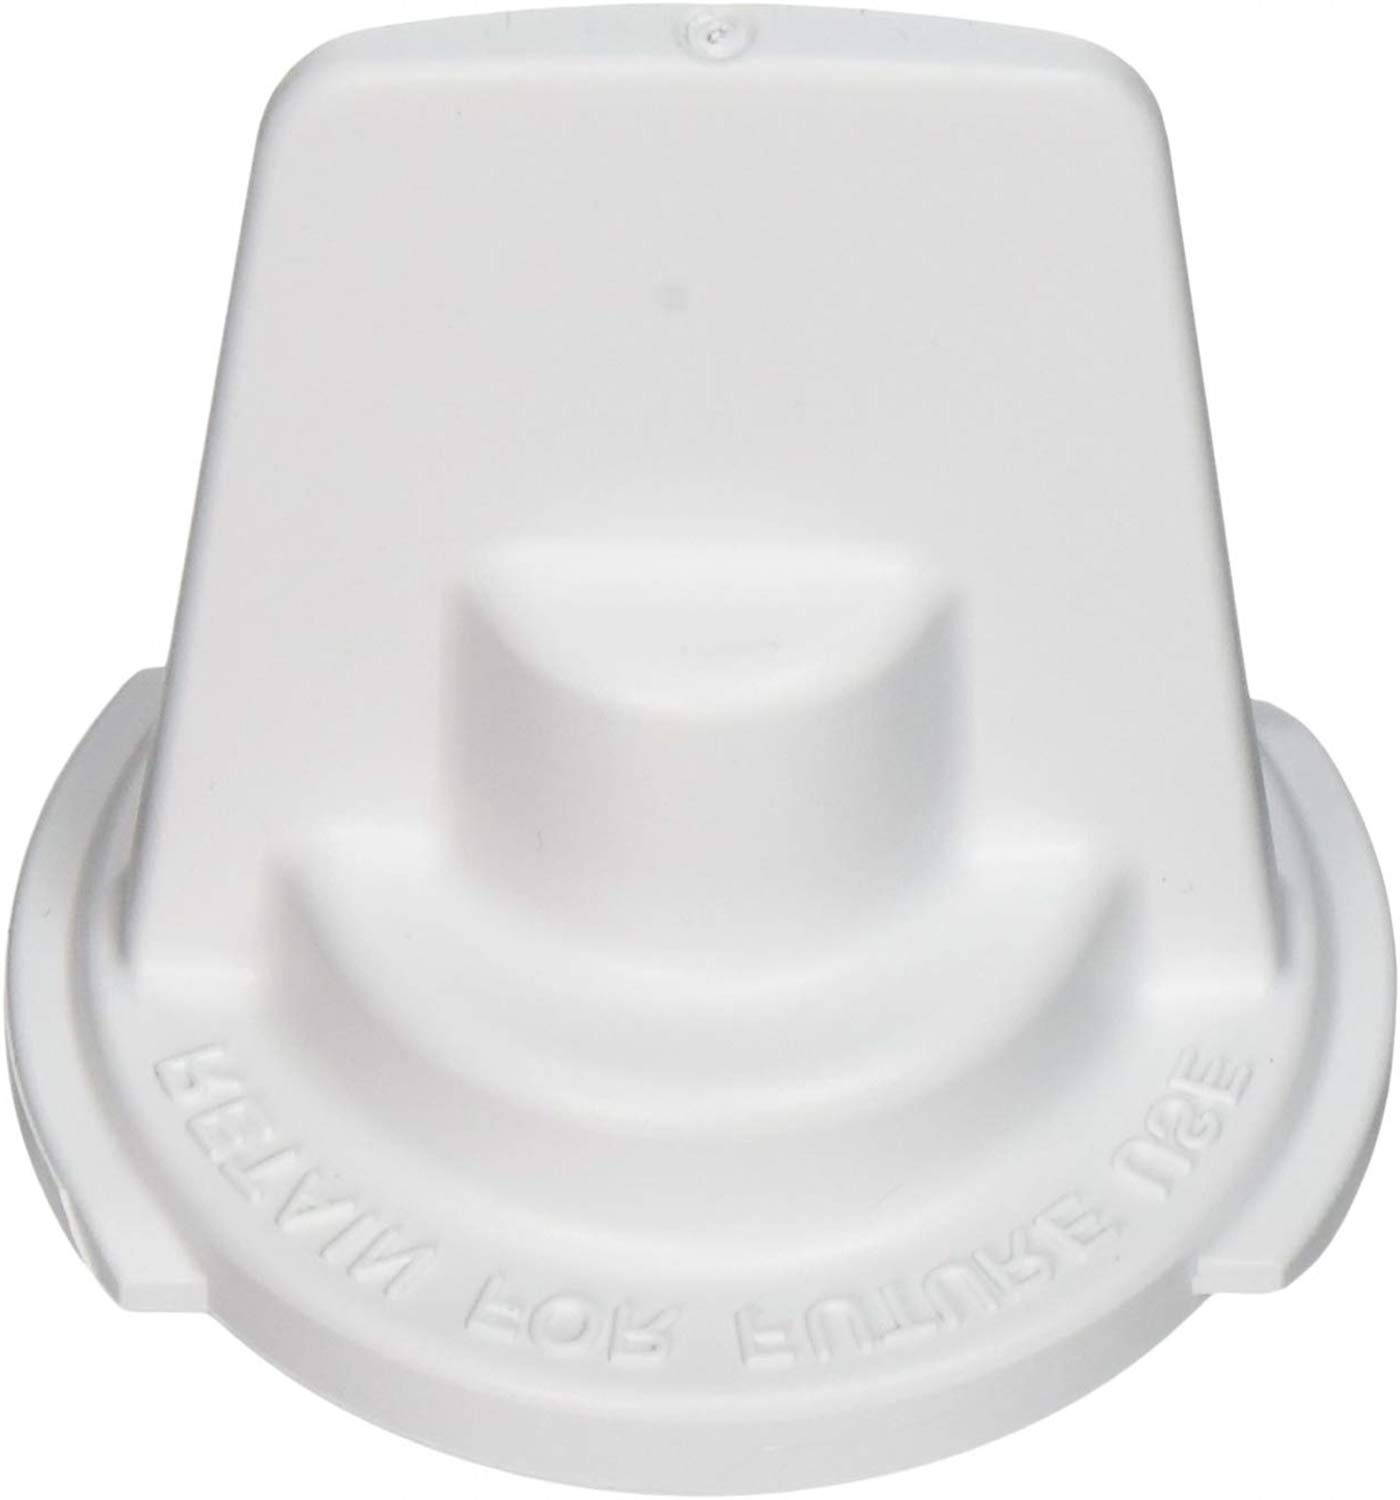 WR02X11705 Filter Bypass Cap for General Electric (GE) Refrigerator MWF GFW